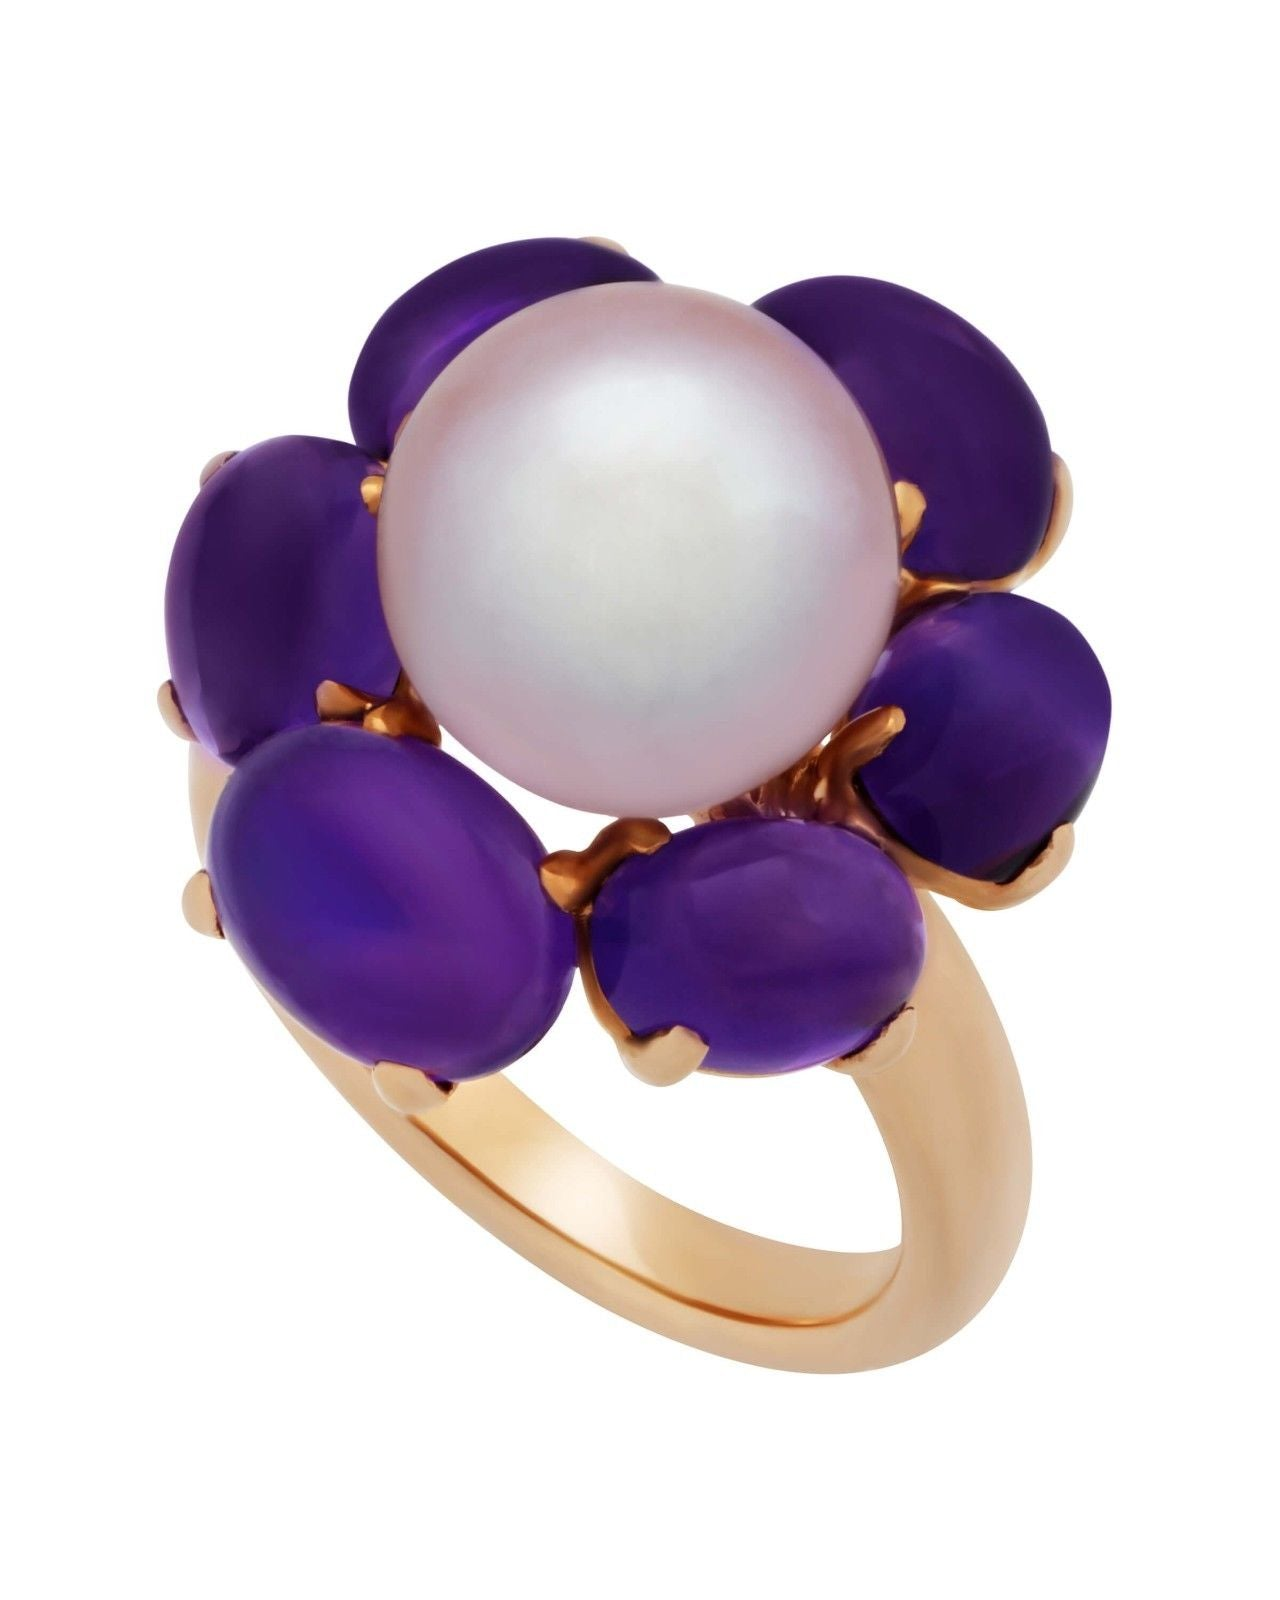 Mimi Milano Ring In 18K Rose Gold, Amethyst Violet Freshwater Pearl A308C3A